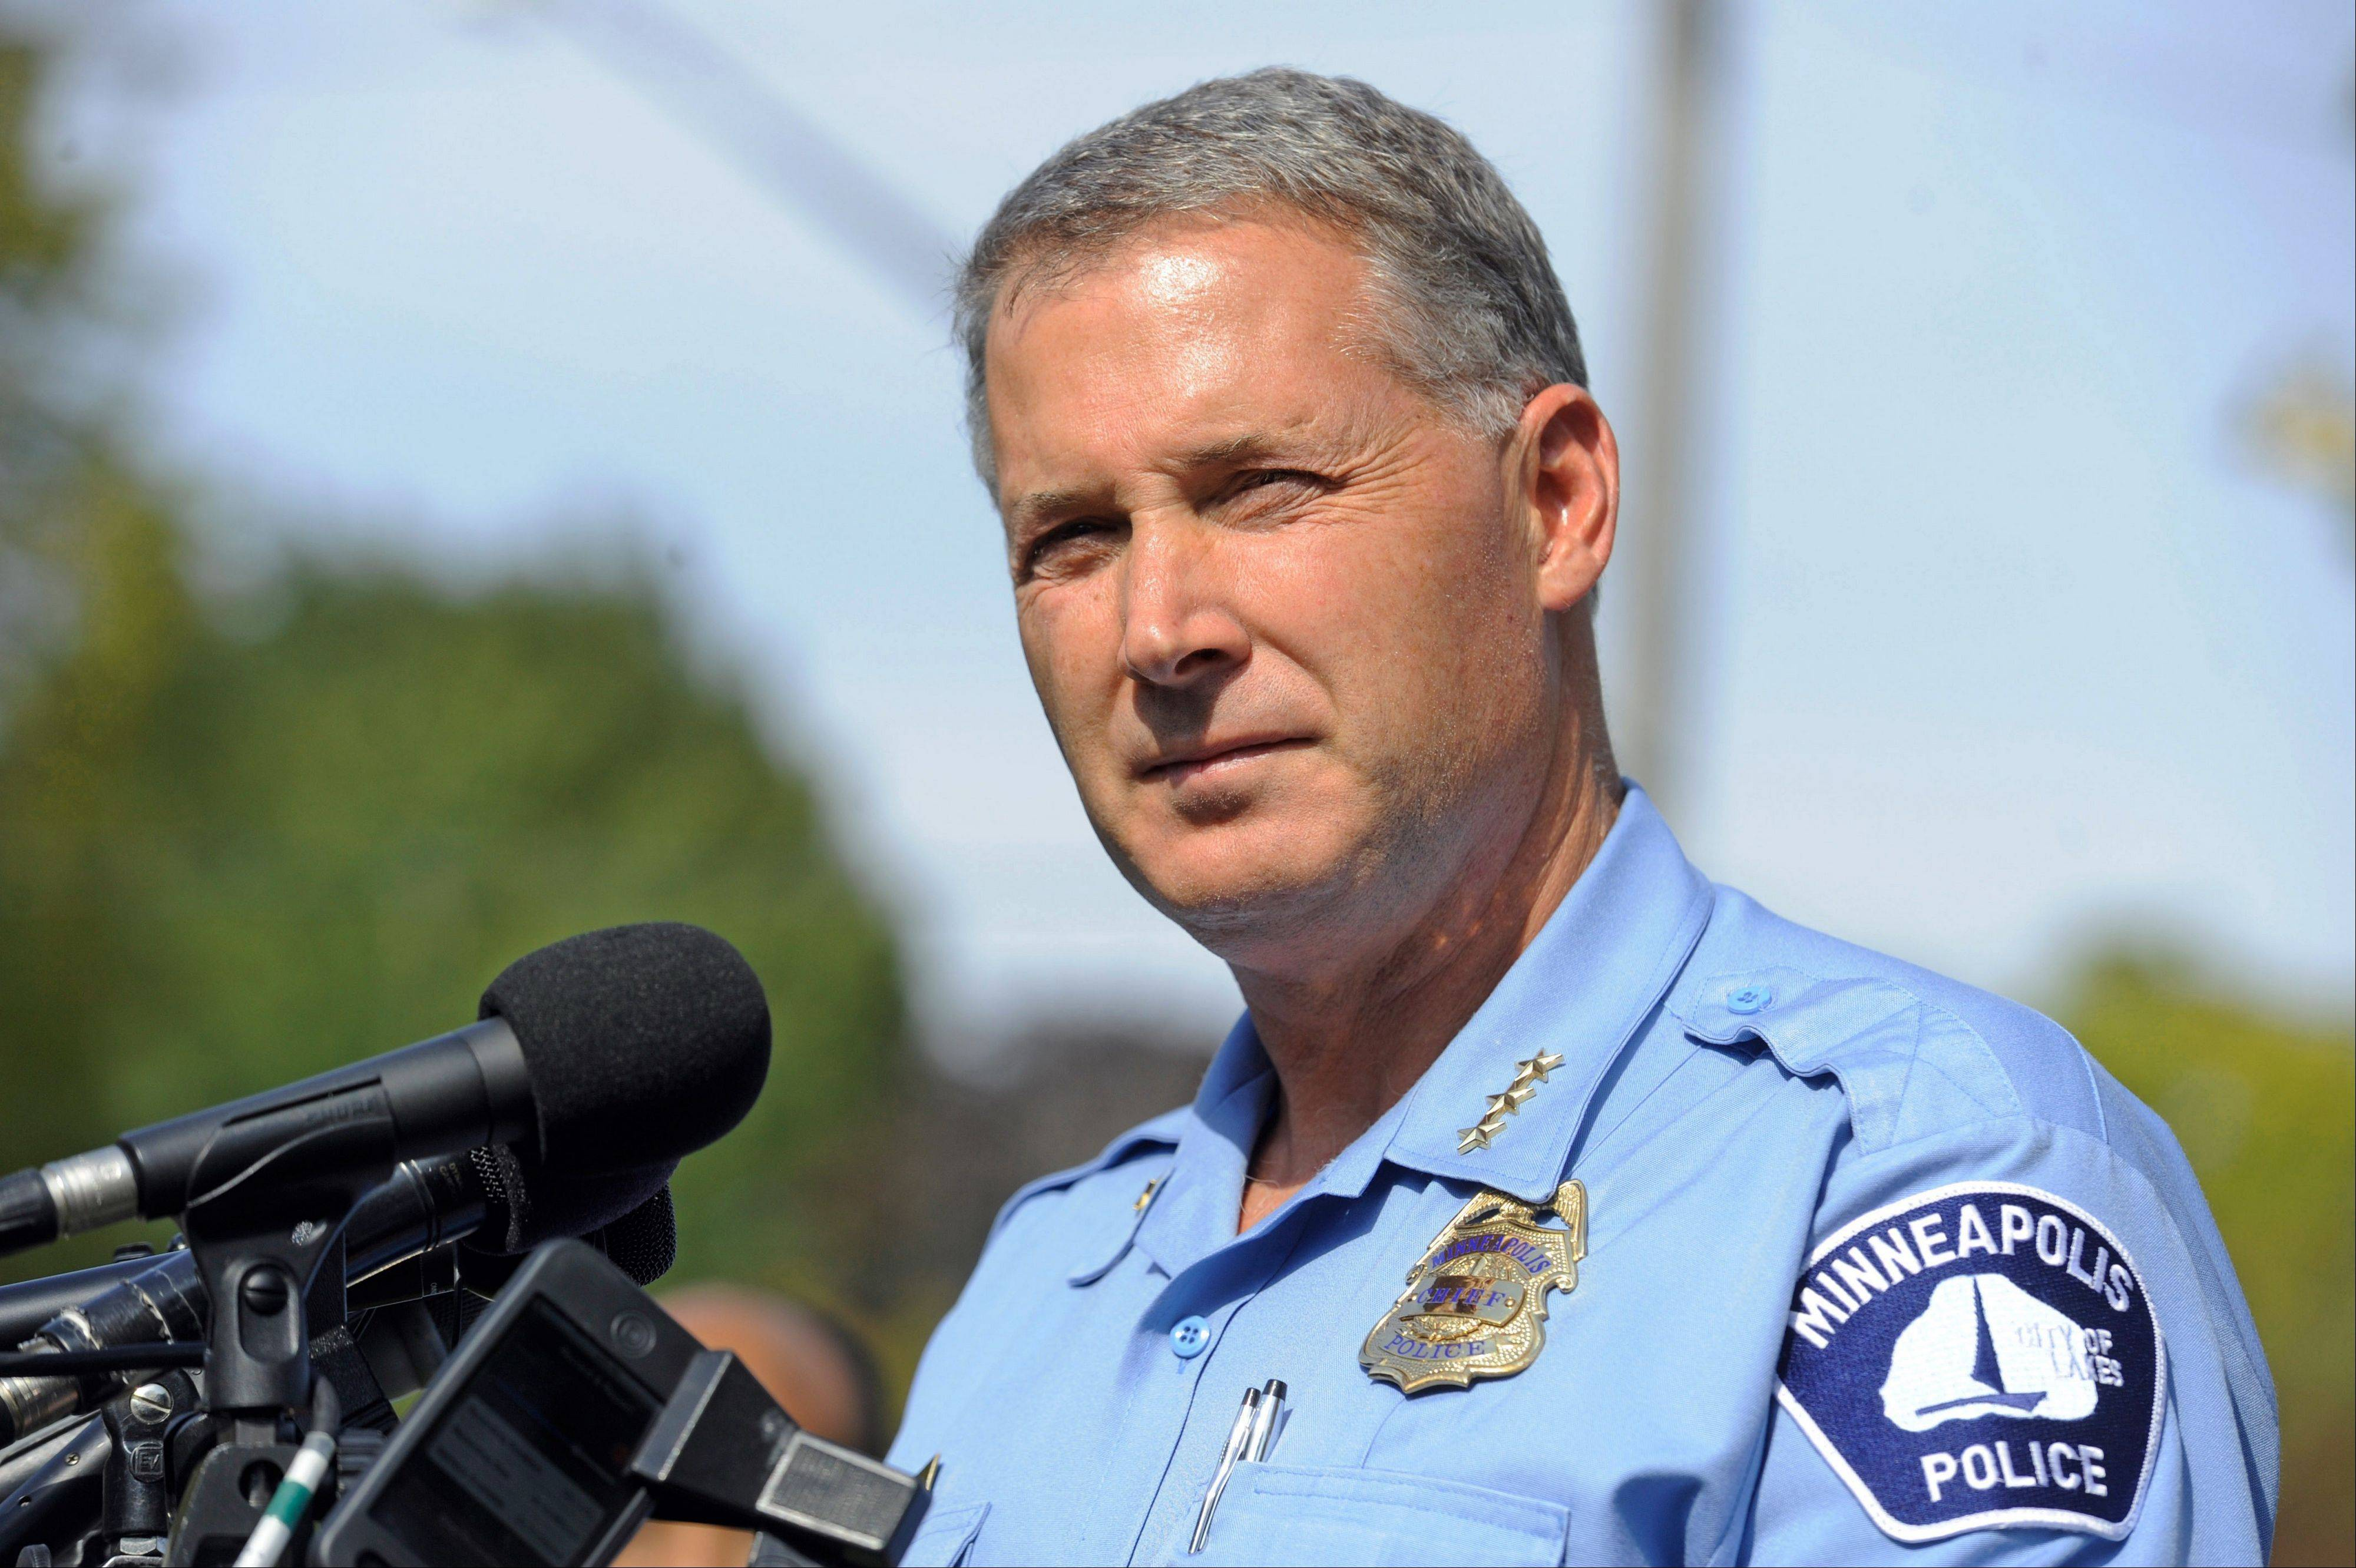 Associated PressMinneapolis Police Chief Tim Dolan speaks Friday during a news conference at a church near the scene of a mass shooting at Accent Signage Systems. Reuven Rahamim, 61, the owner of Accent Signage Systems was among those killed.